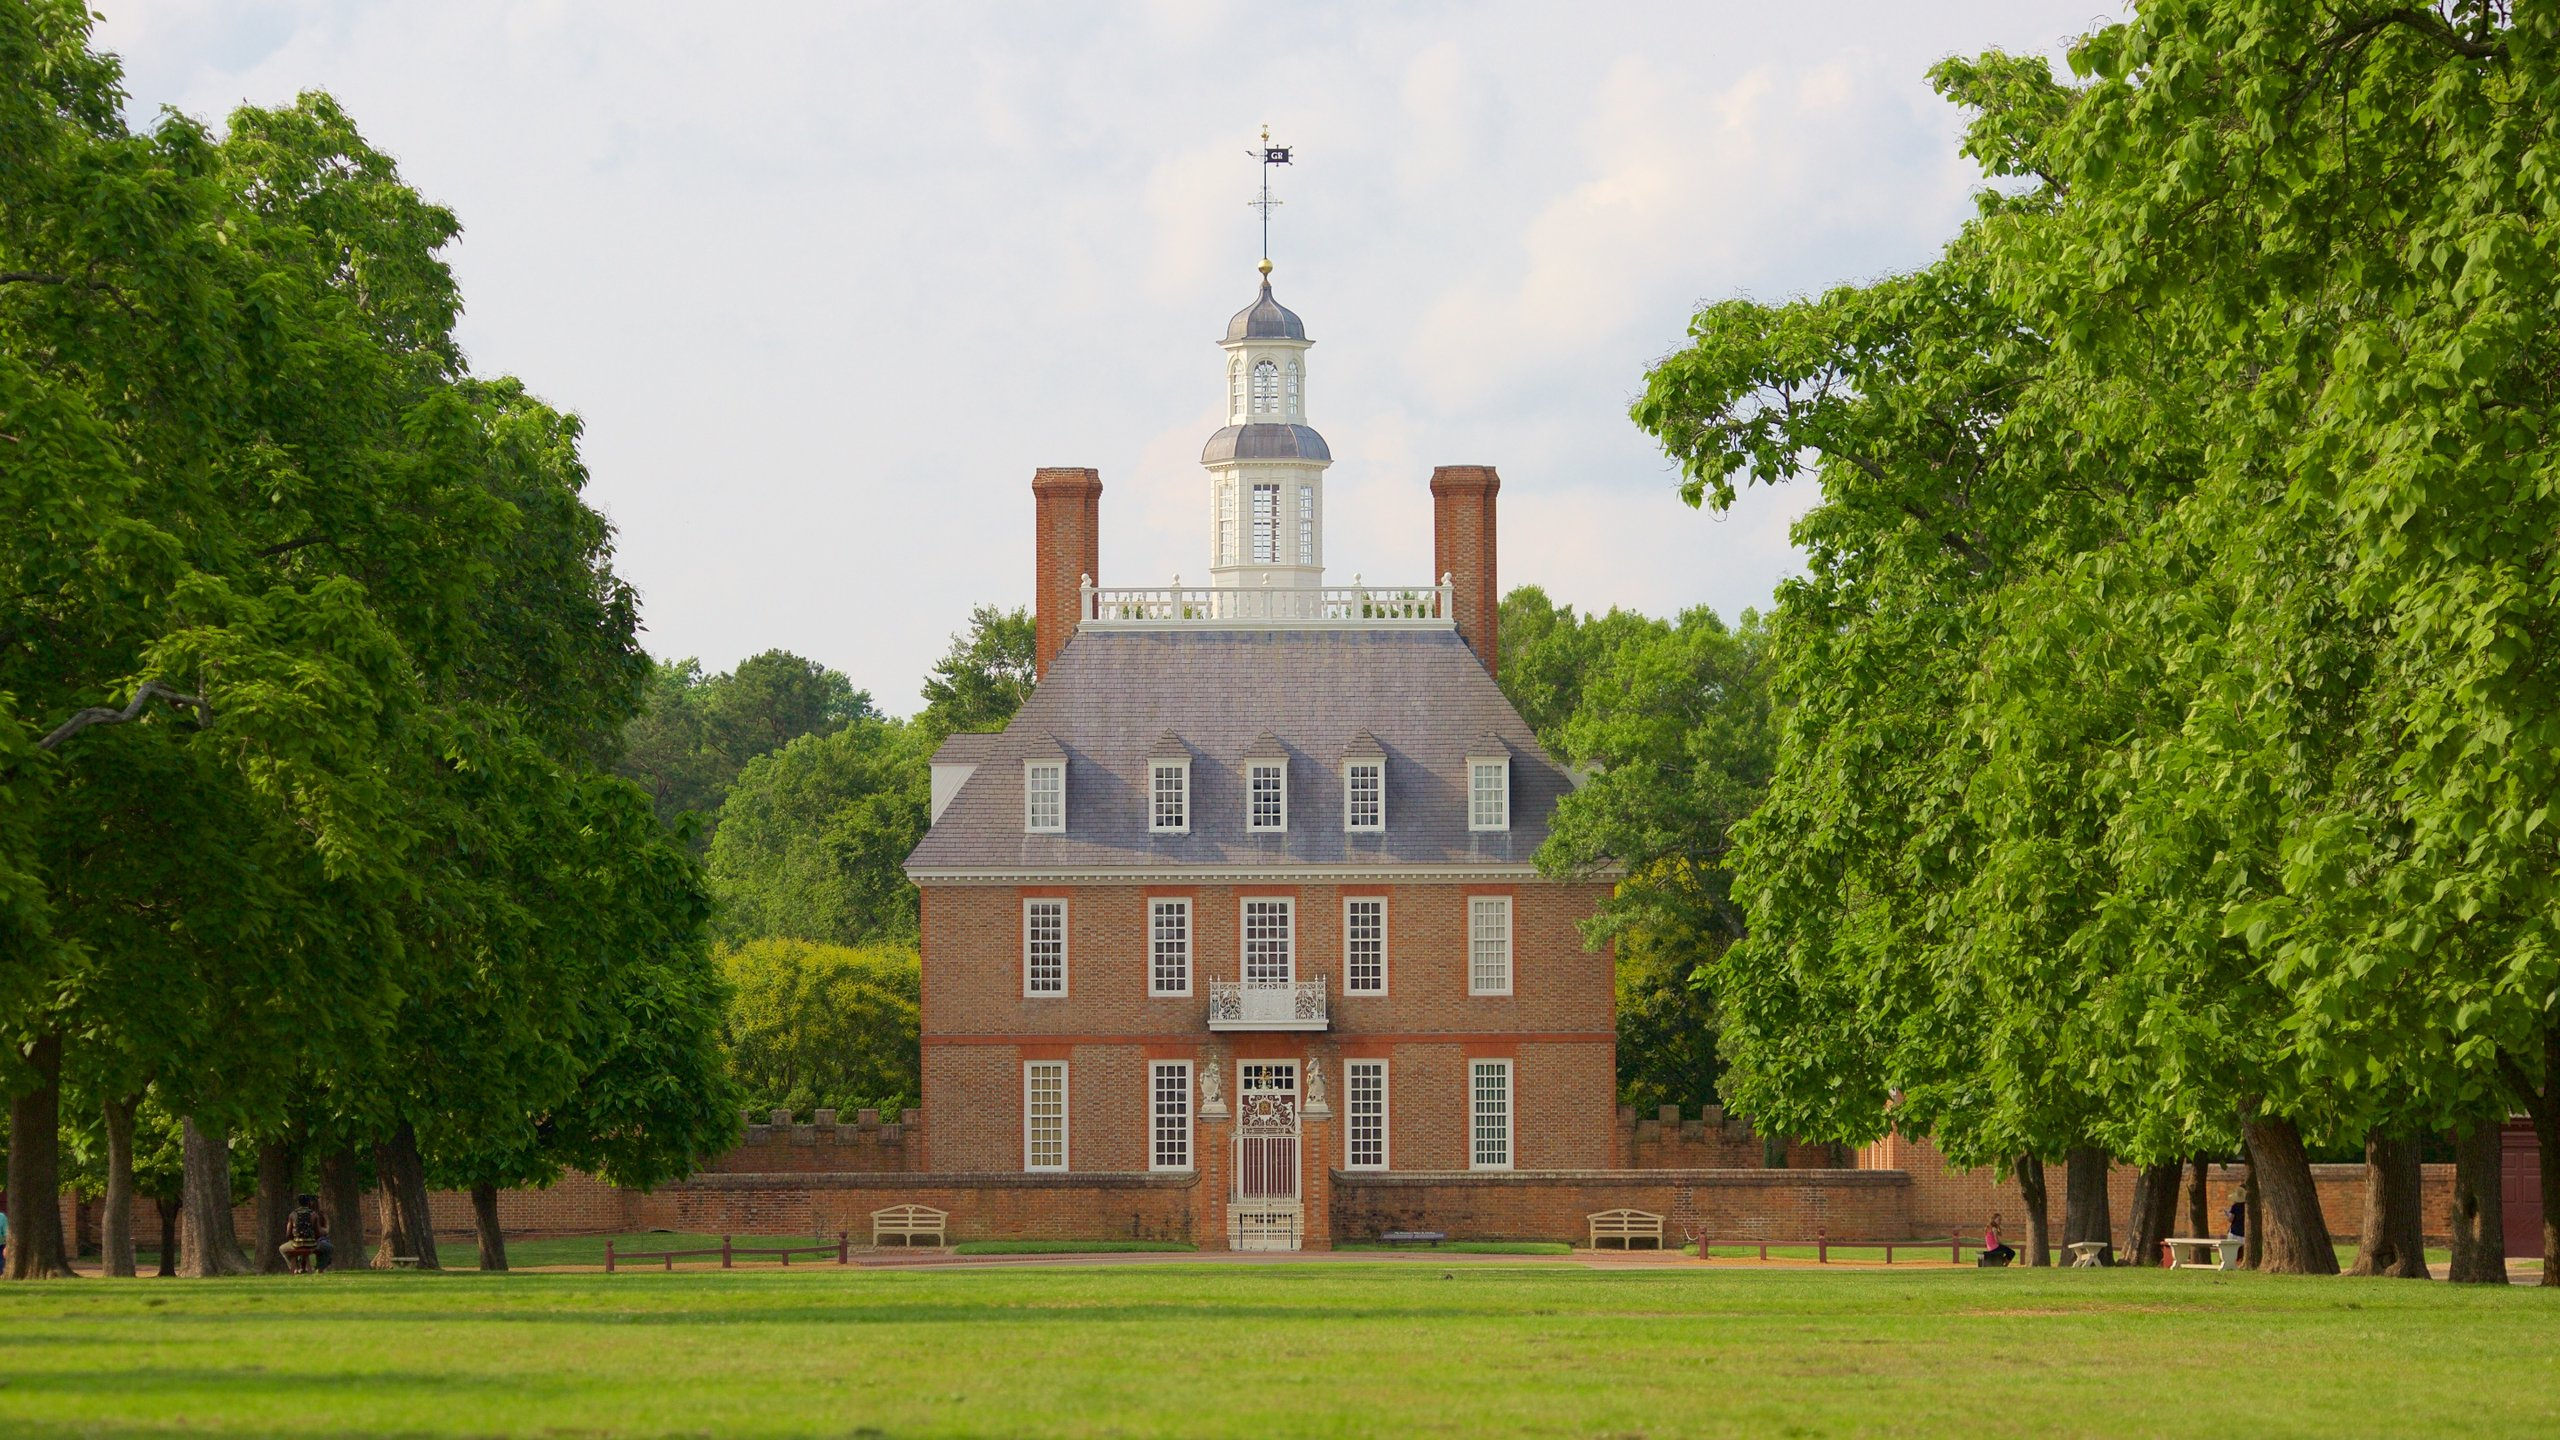 Experience an enlightening introduction to Colonial Williamsburg at this informative center where you can take carriage rides and walking tours among other activities.